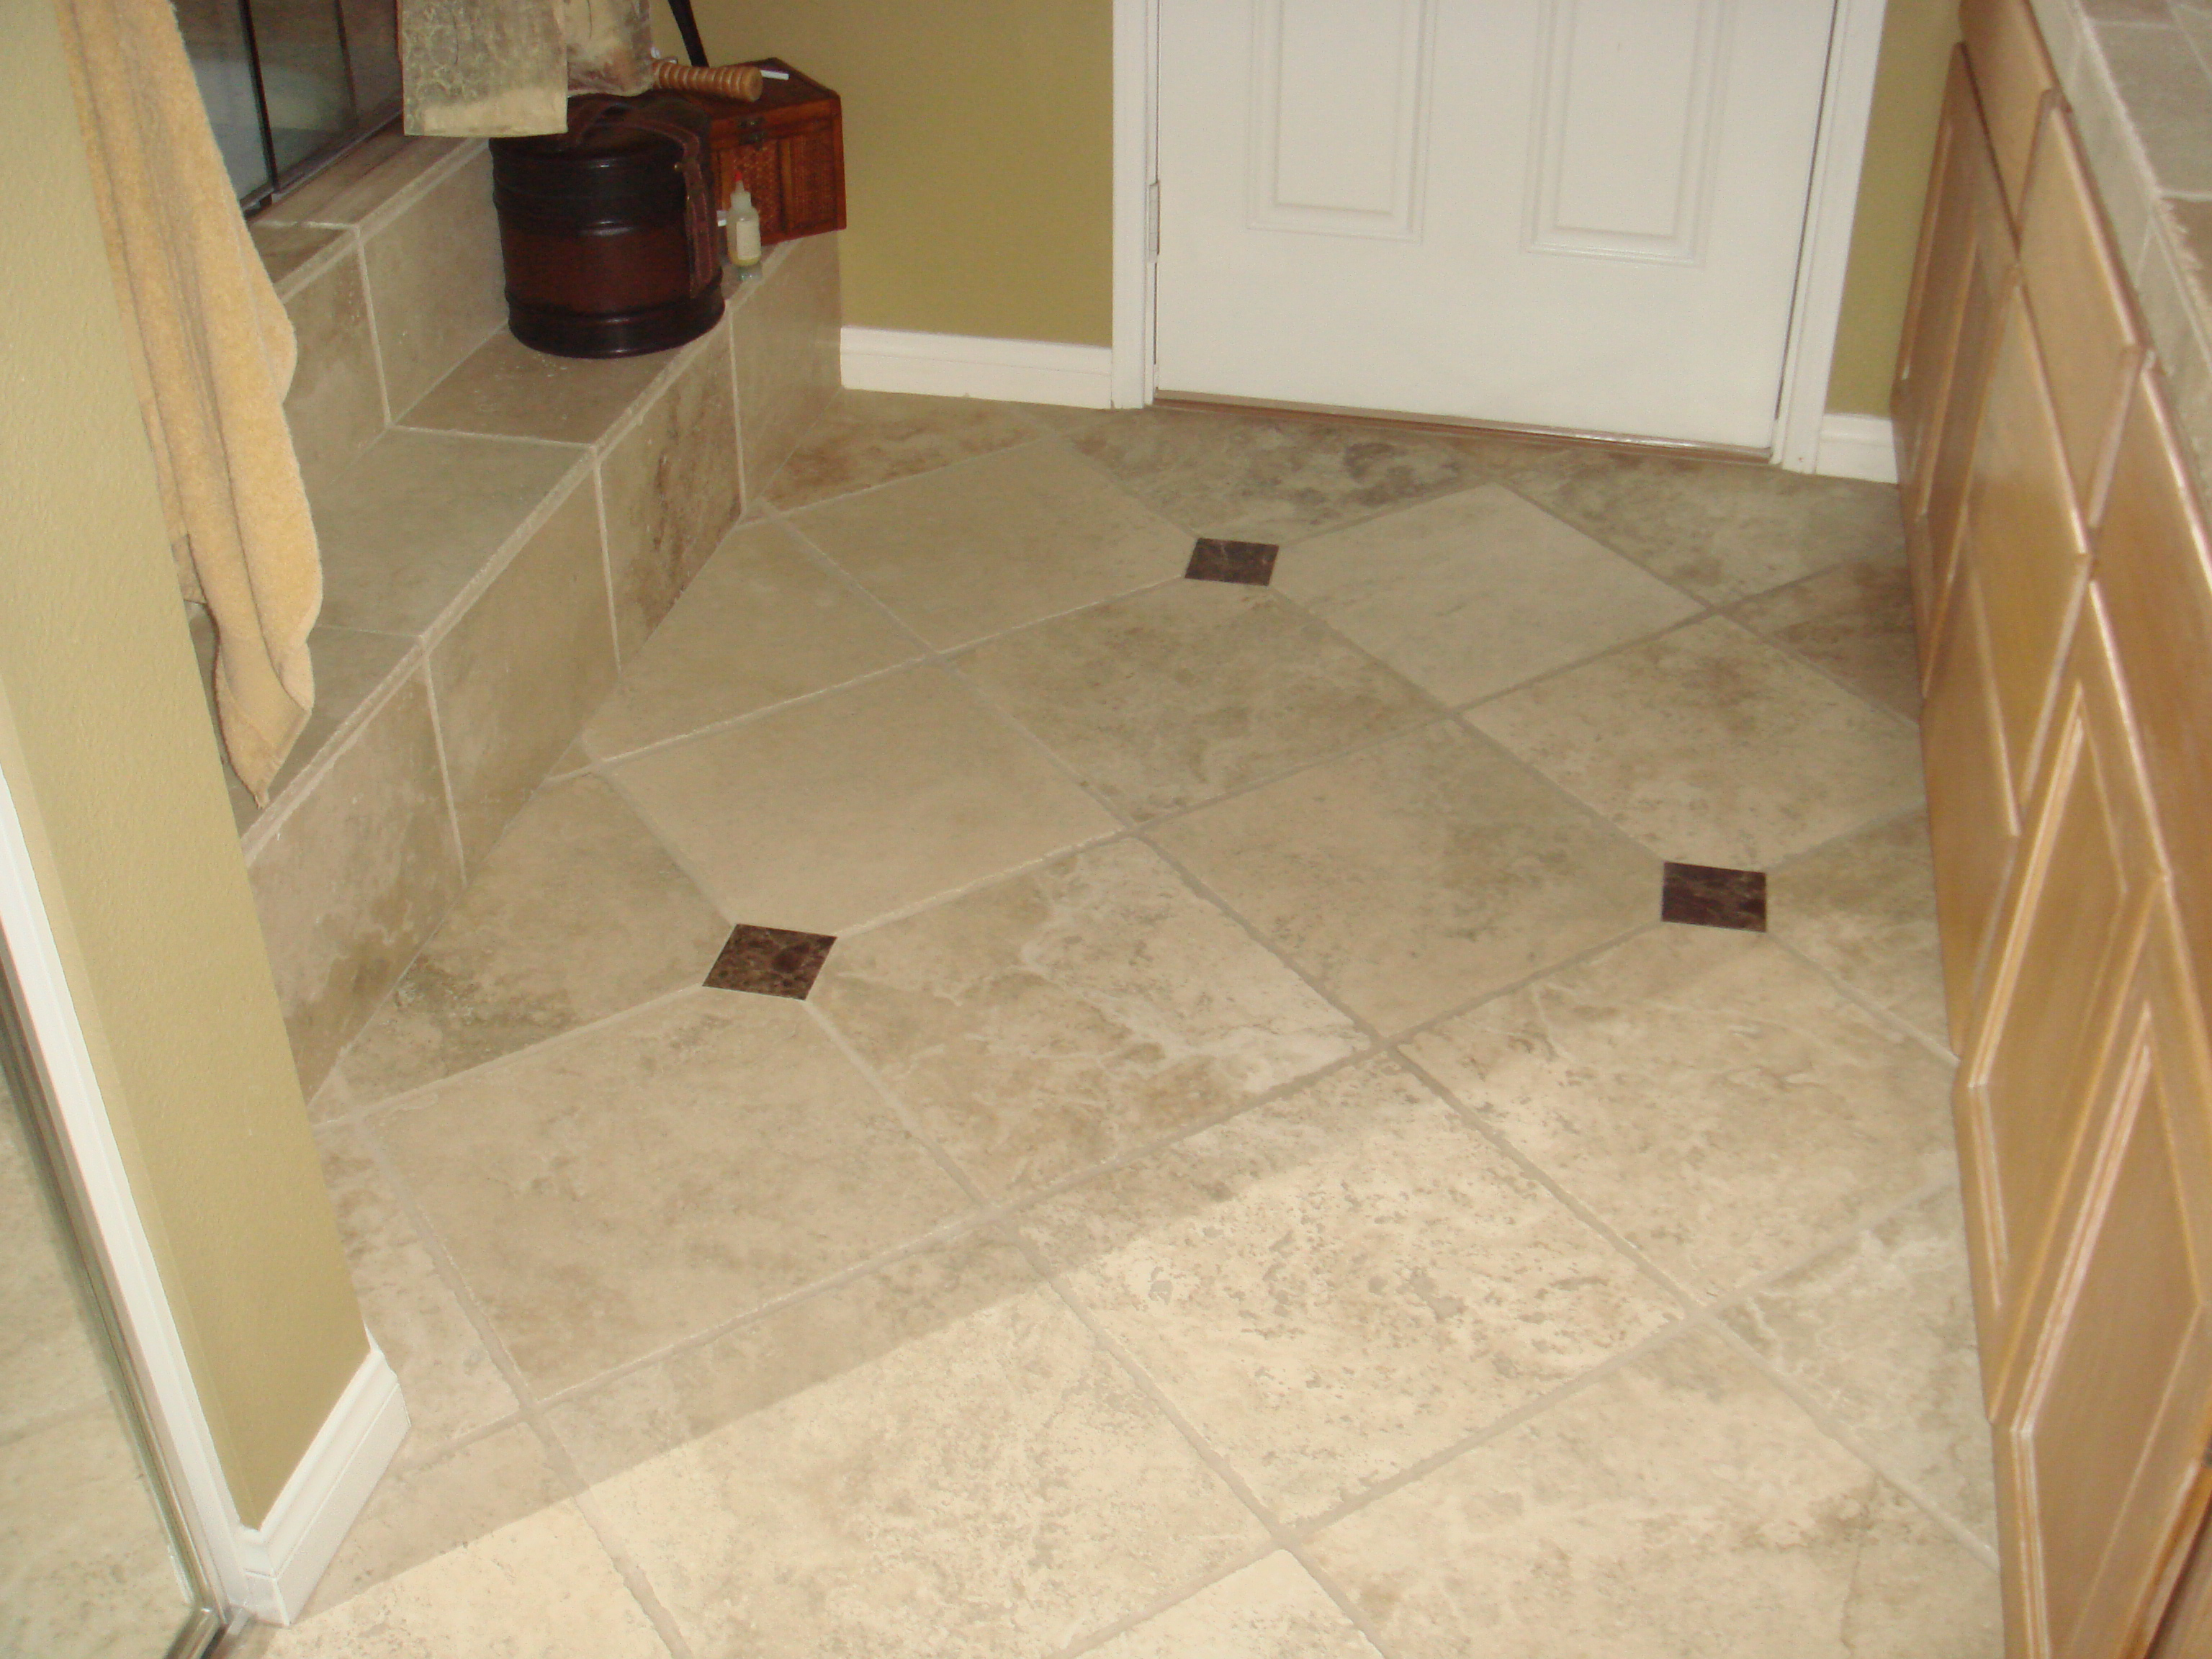 32 amazing ideas and pictures of the best vinyl tiles for Images of bathroom tile floors